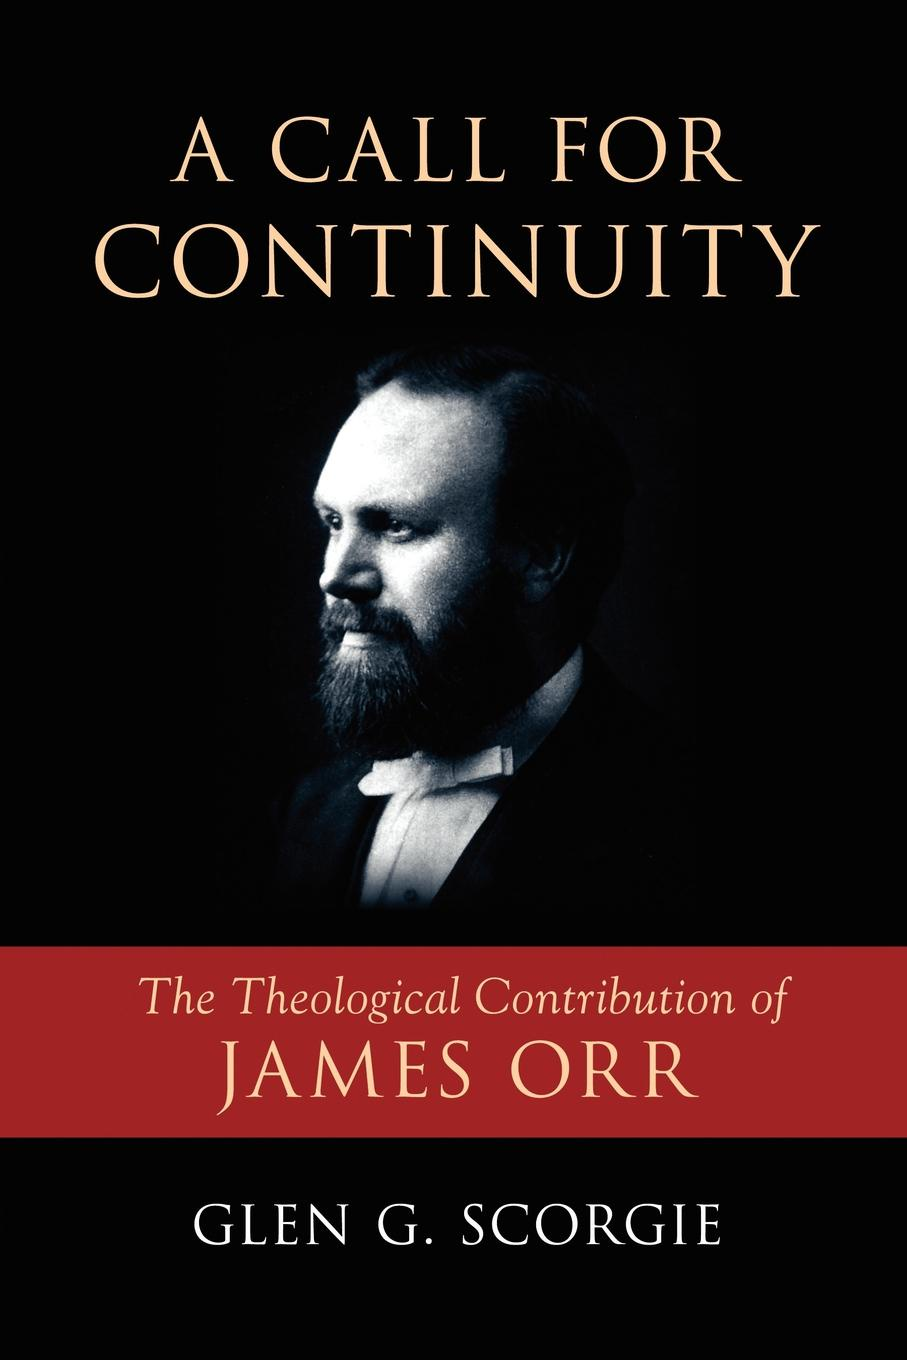 Glen G. Scorgie A Call for Continuity. The Theological Contribution of James Orr alice orr key west heat